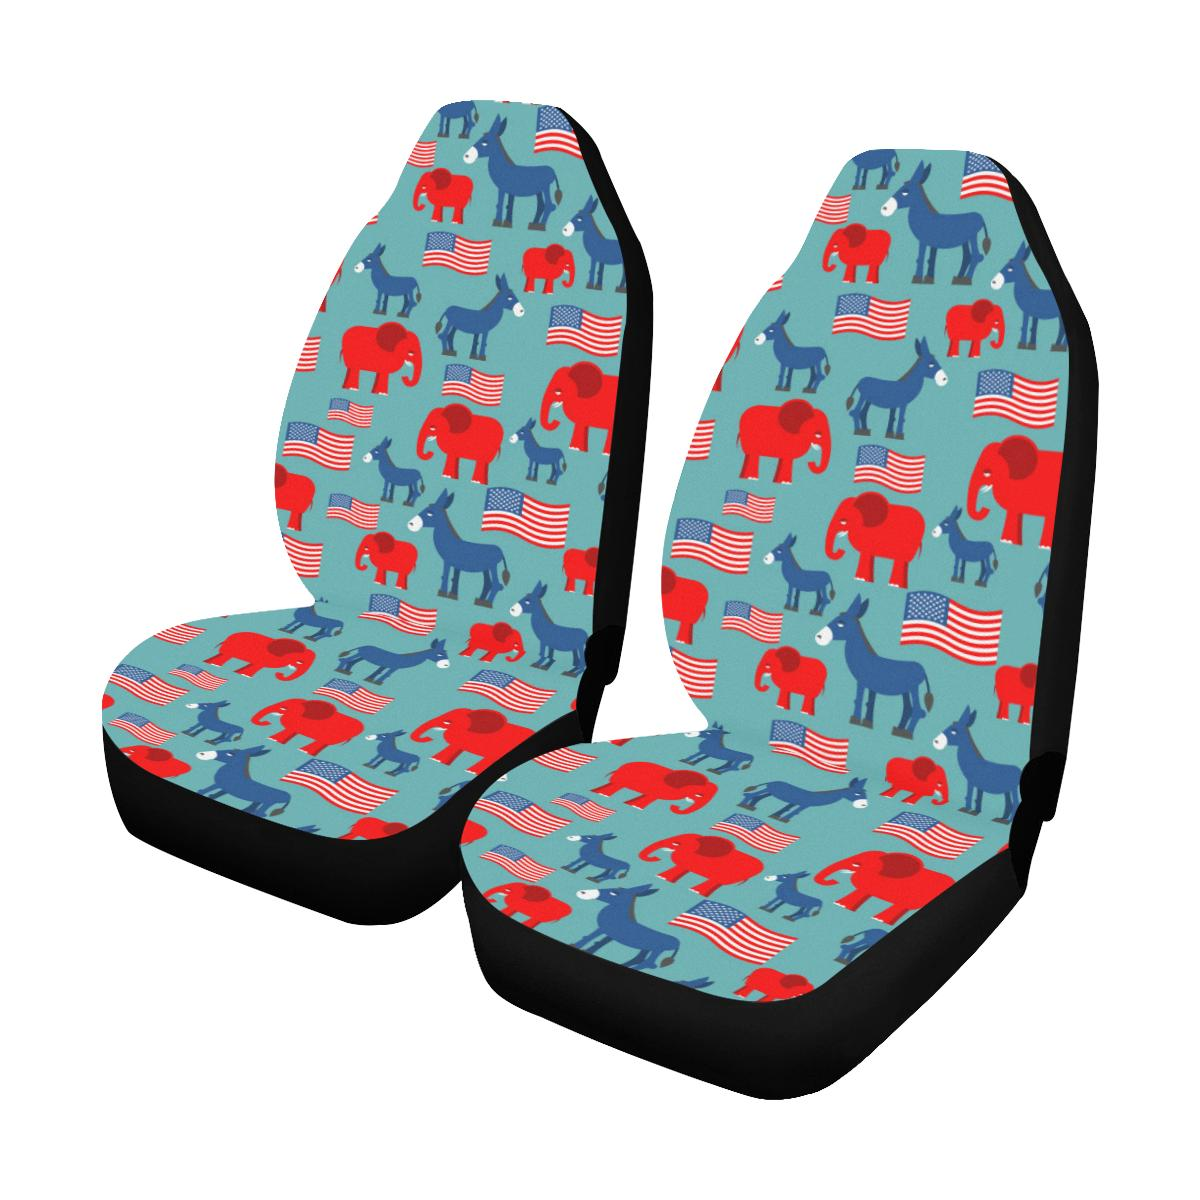 Donkey Red Elephant Pattern Print Design 03 Car Seat Covers (Set of 2)-JORJUNE.COM